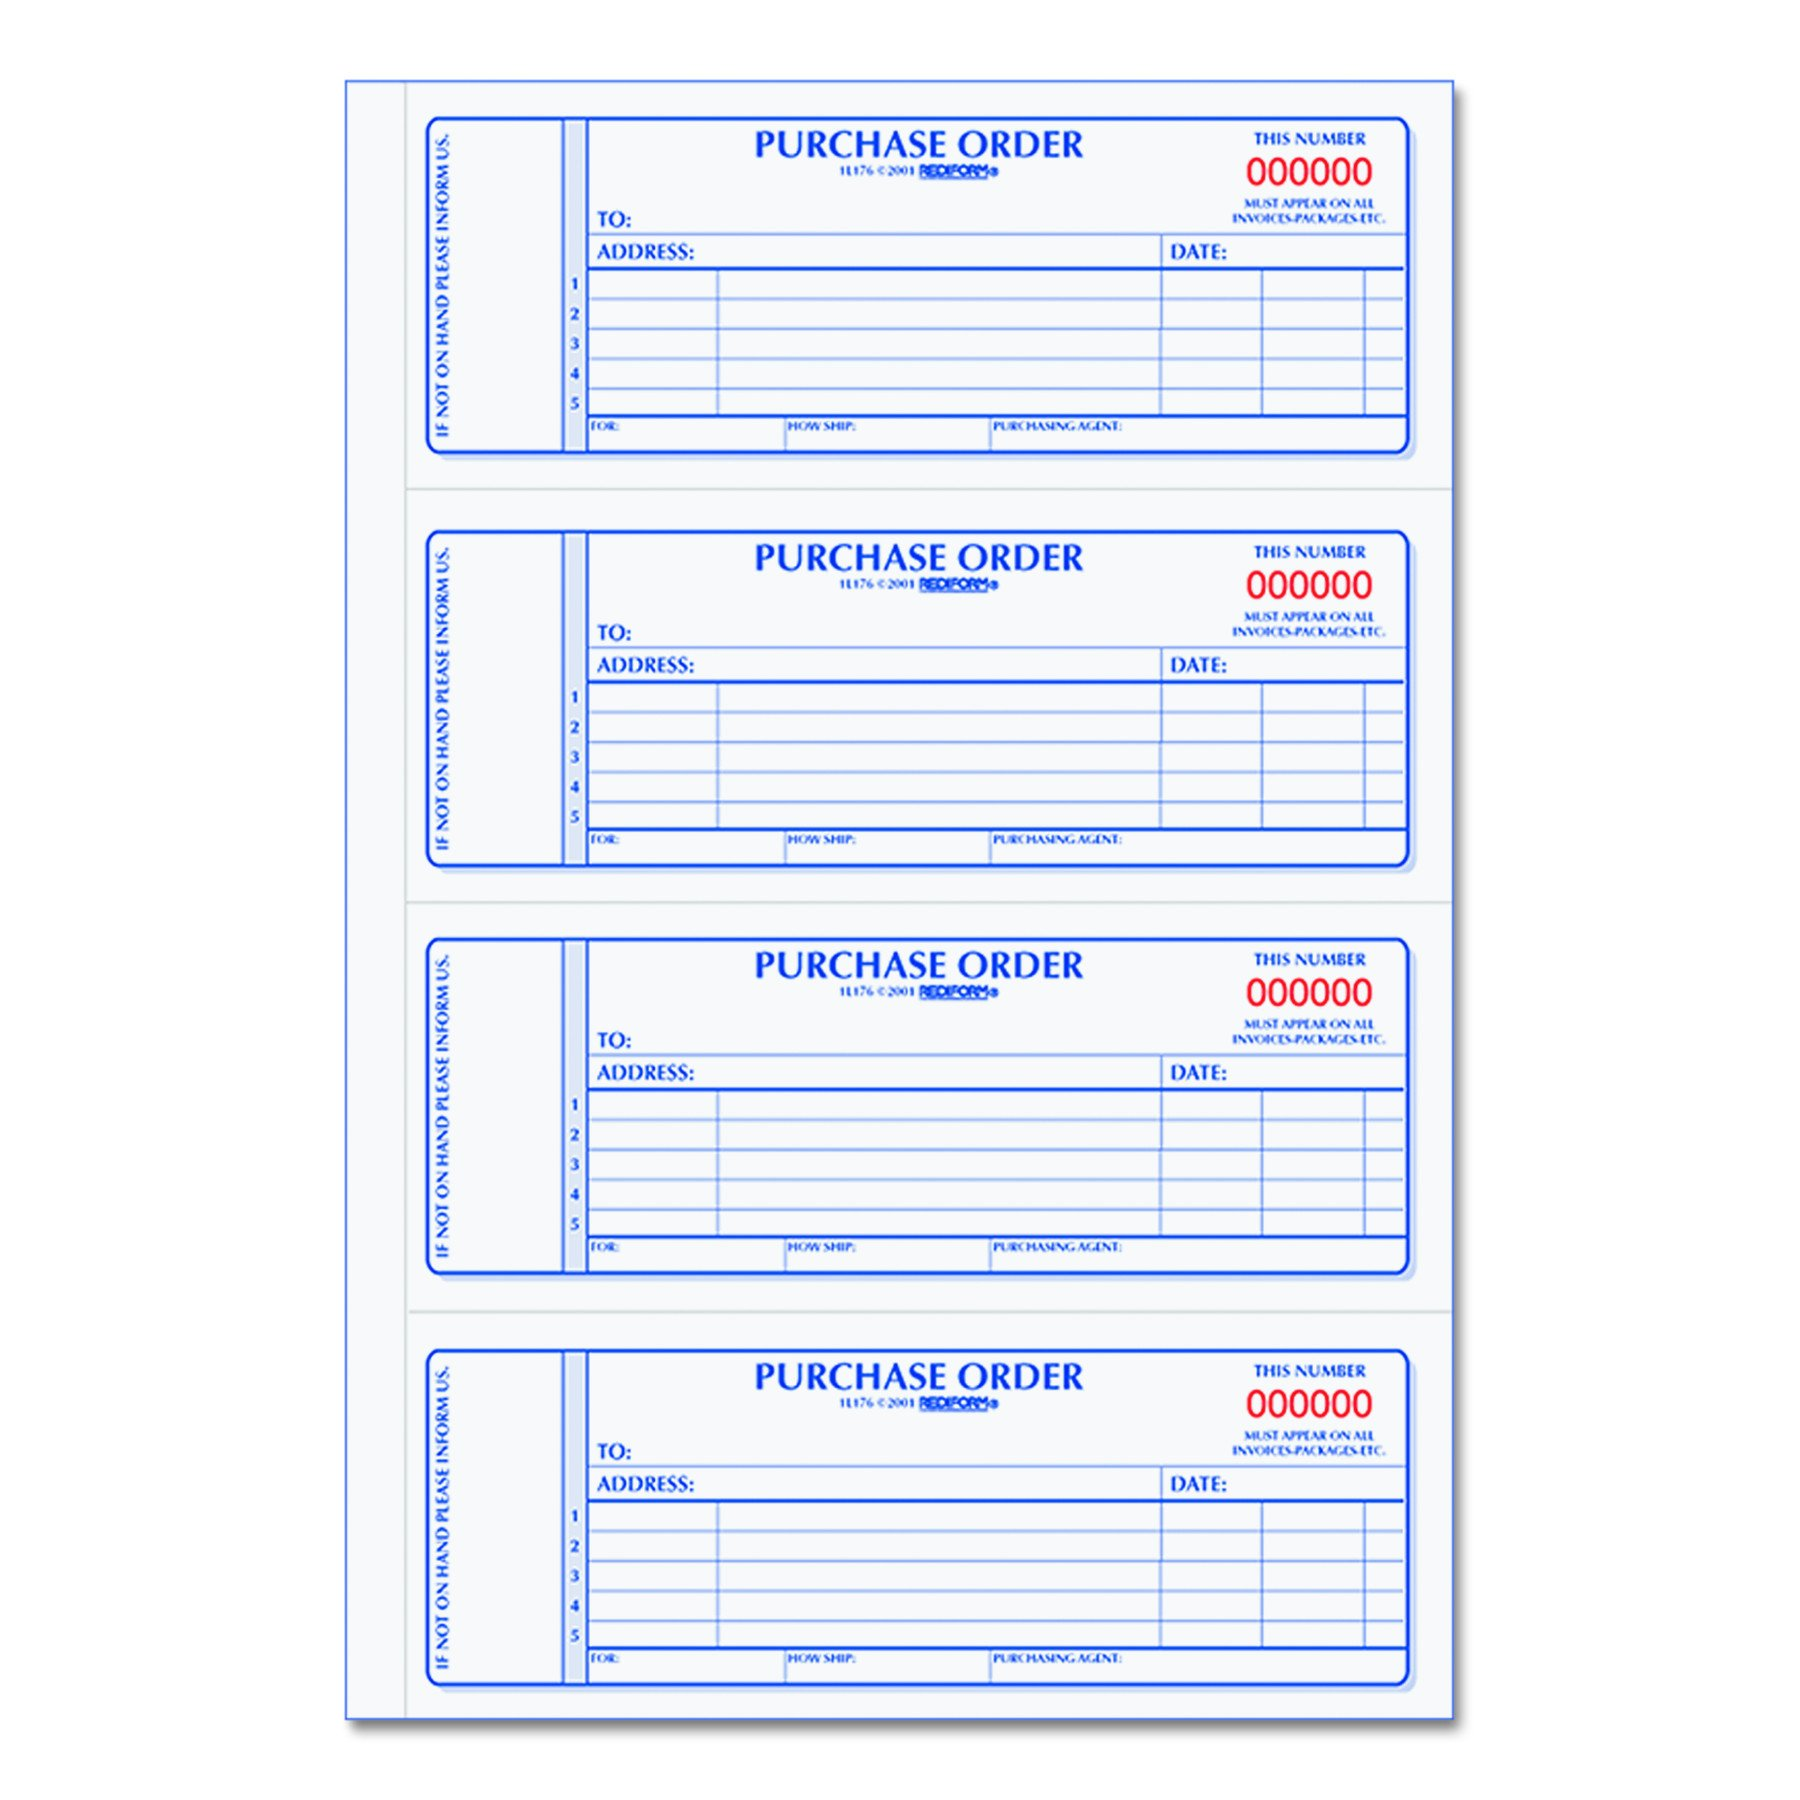 Rediform Carbonless Purchase Order Book, Numbered, 2.75 x 7 Inches, 400 Duplicate Sets (1L176)